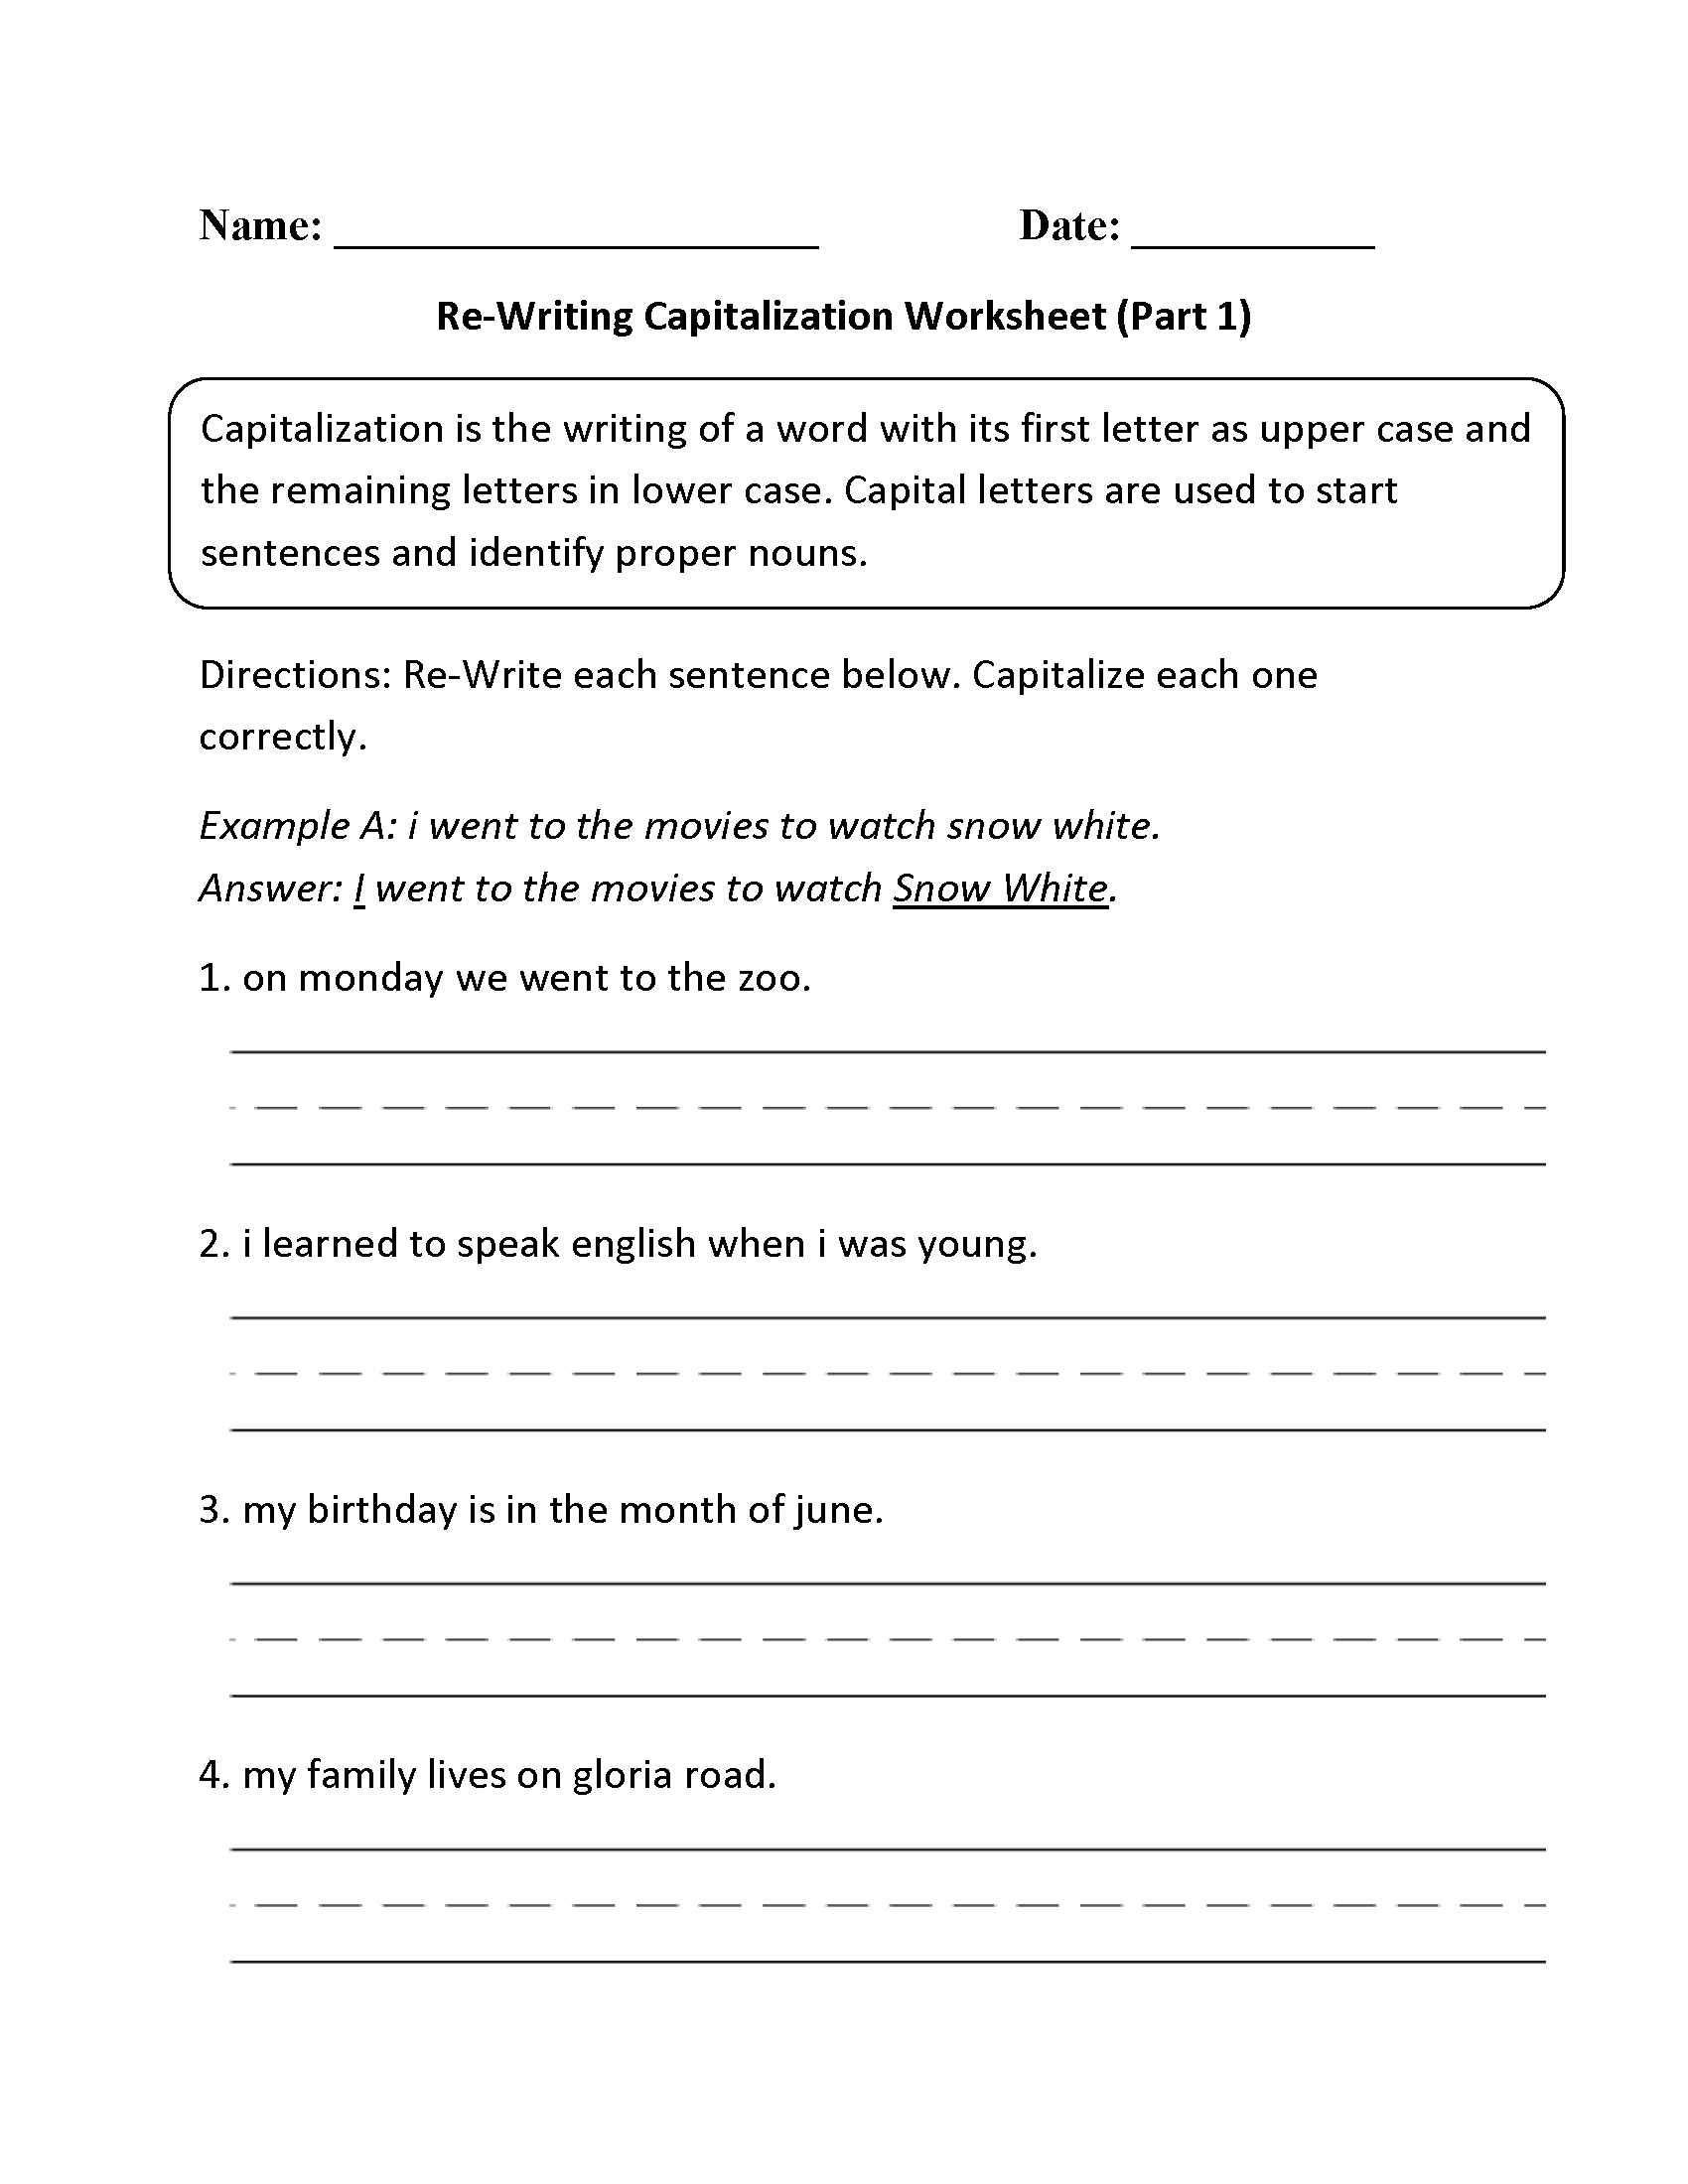 Worksheets 3rd Grade Capitalization Worksheets englishlinx com capitalization worksheets re writing worksheet part 1